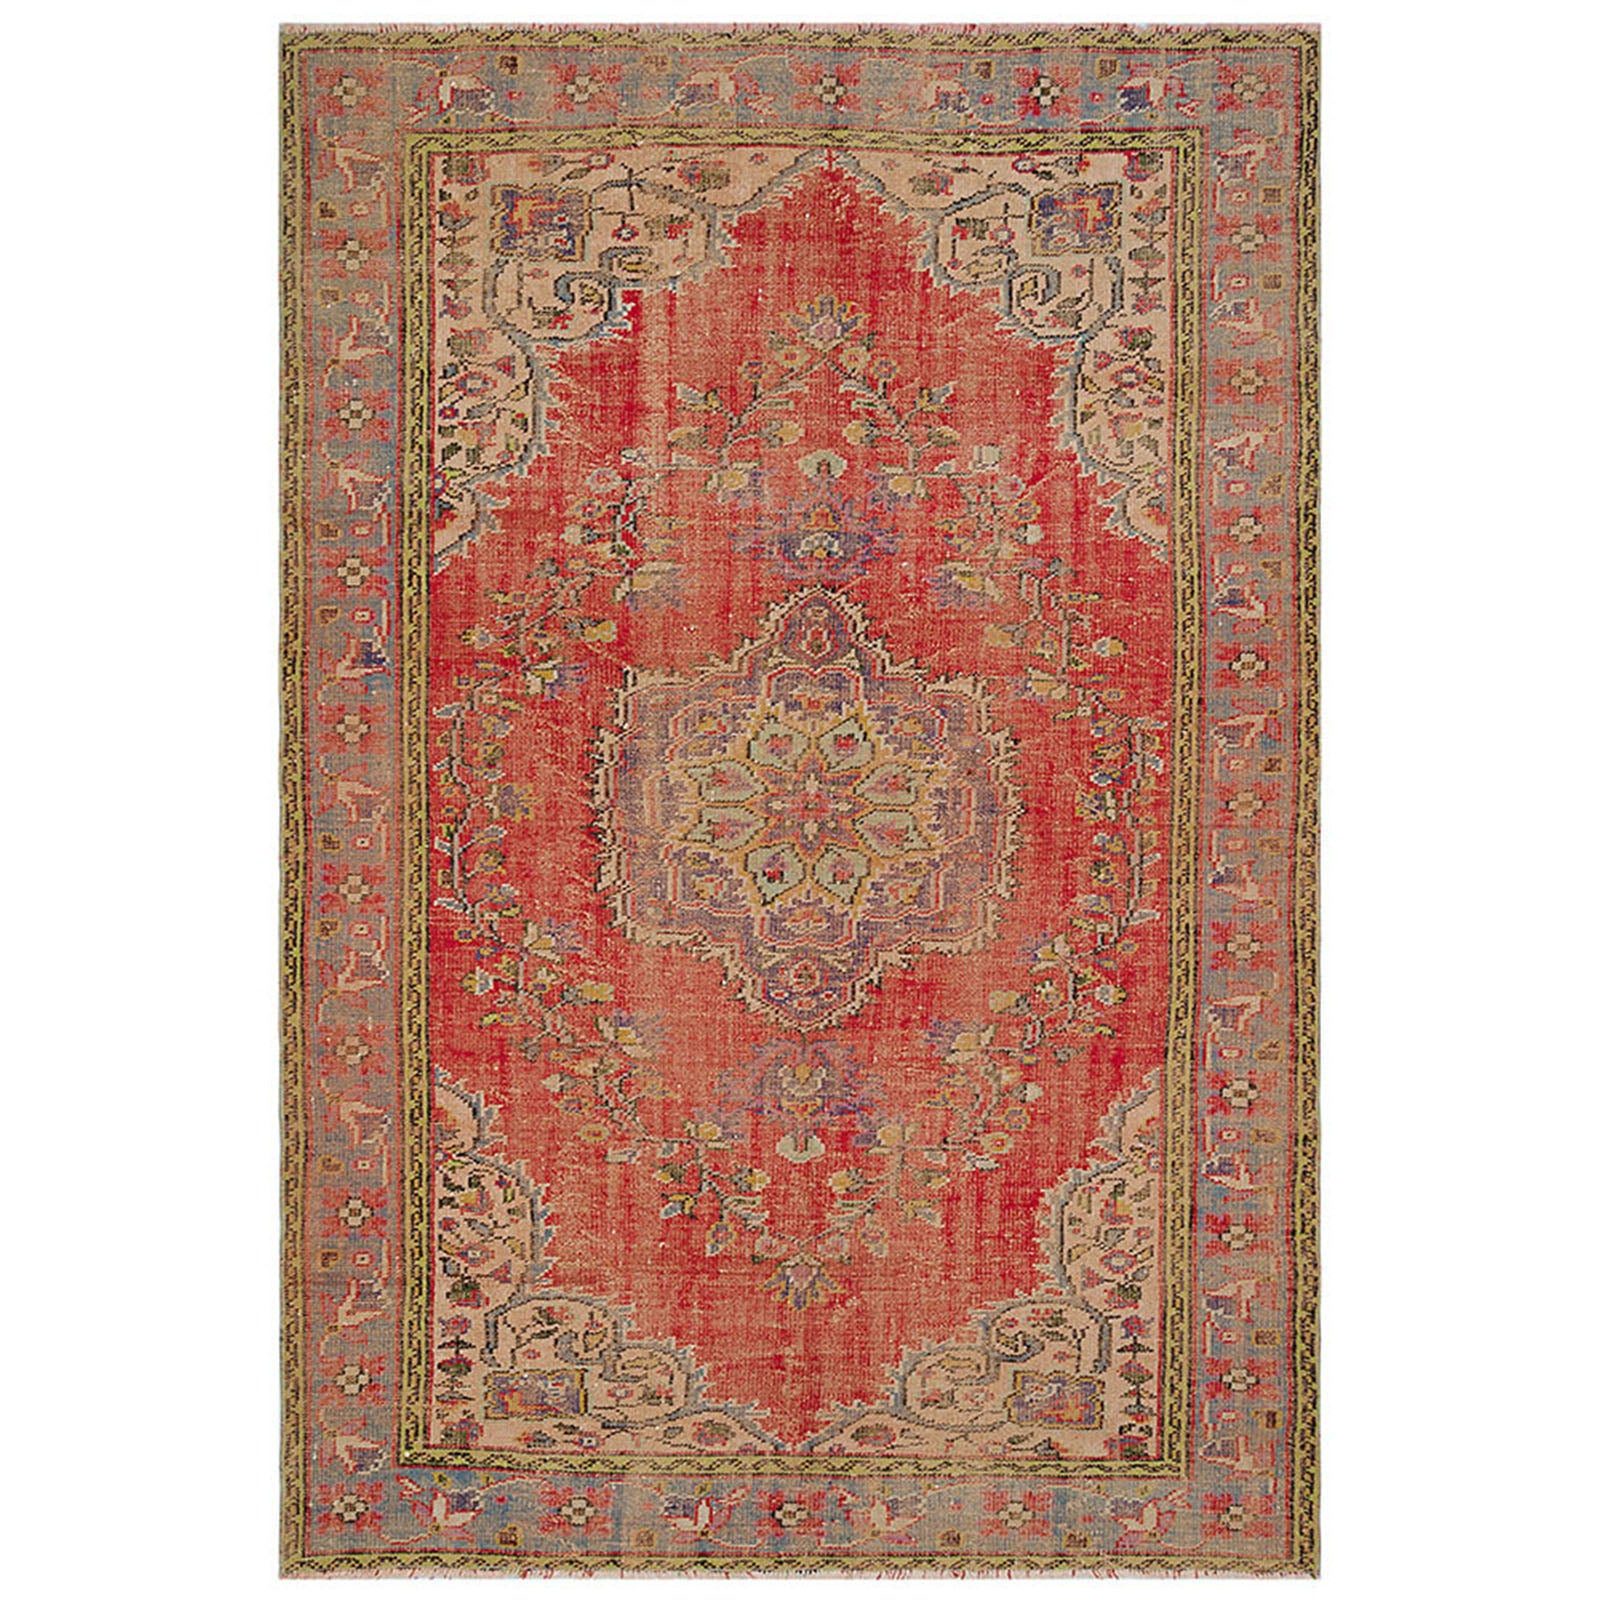 Hali 196X284  CM Bursa Handmade over dyed rug  2029 -  196*284 سجاده بورصة صناعة يدوية على بساط مصبوغ - Shop Online Furniture and Home Decor Store in Dubai, UAE at ebarza